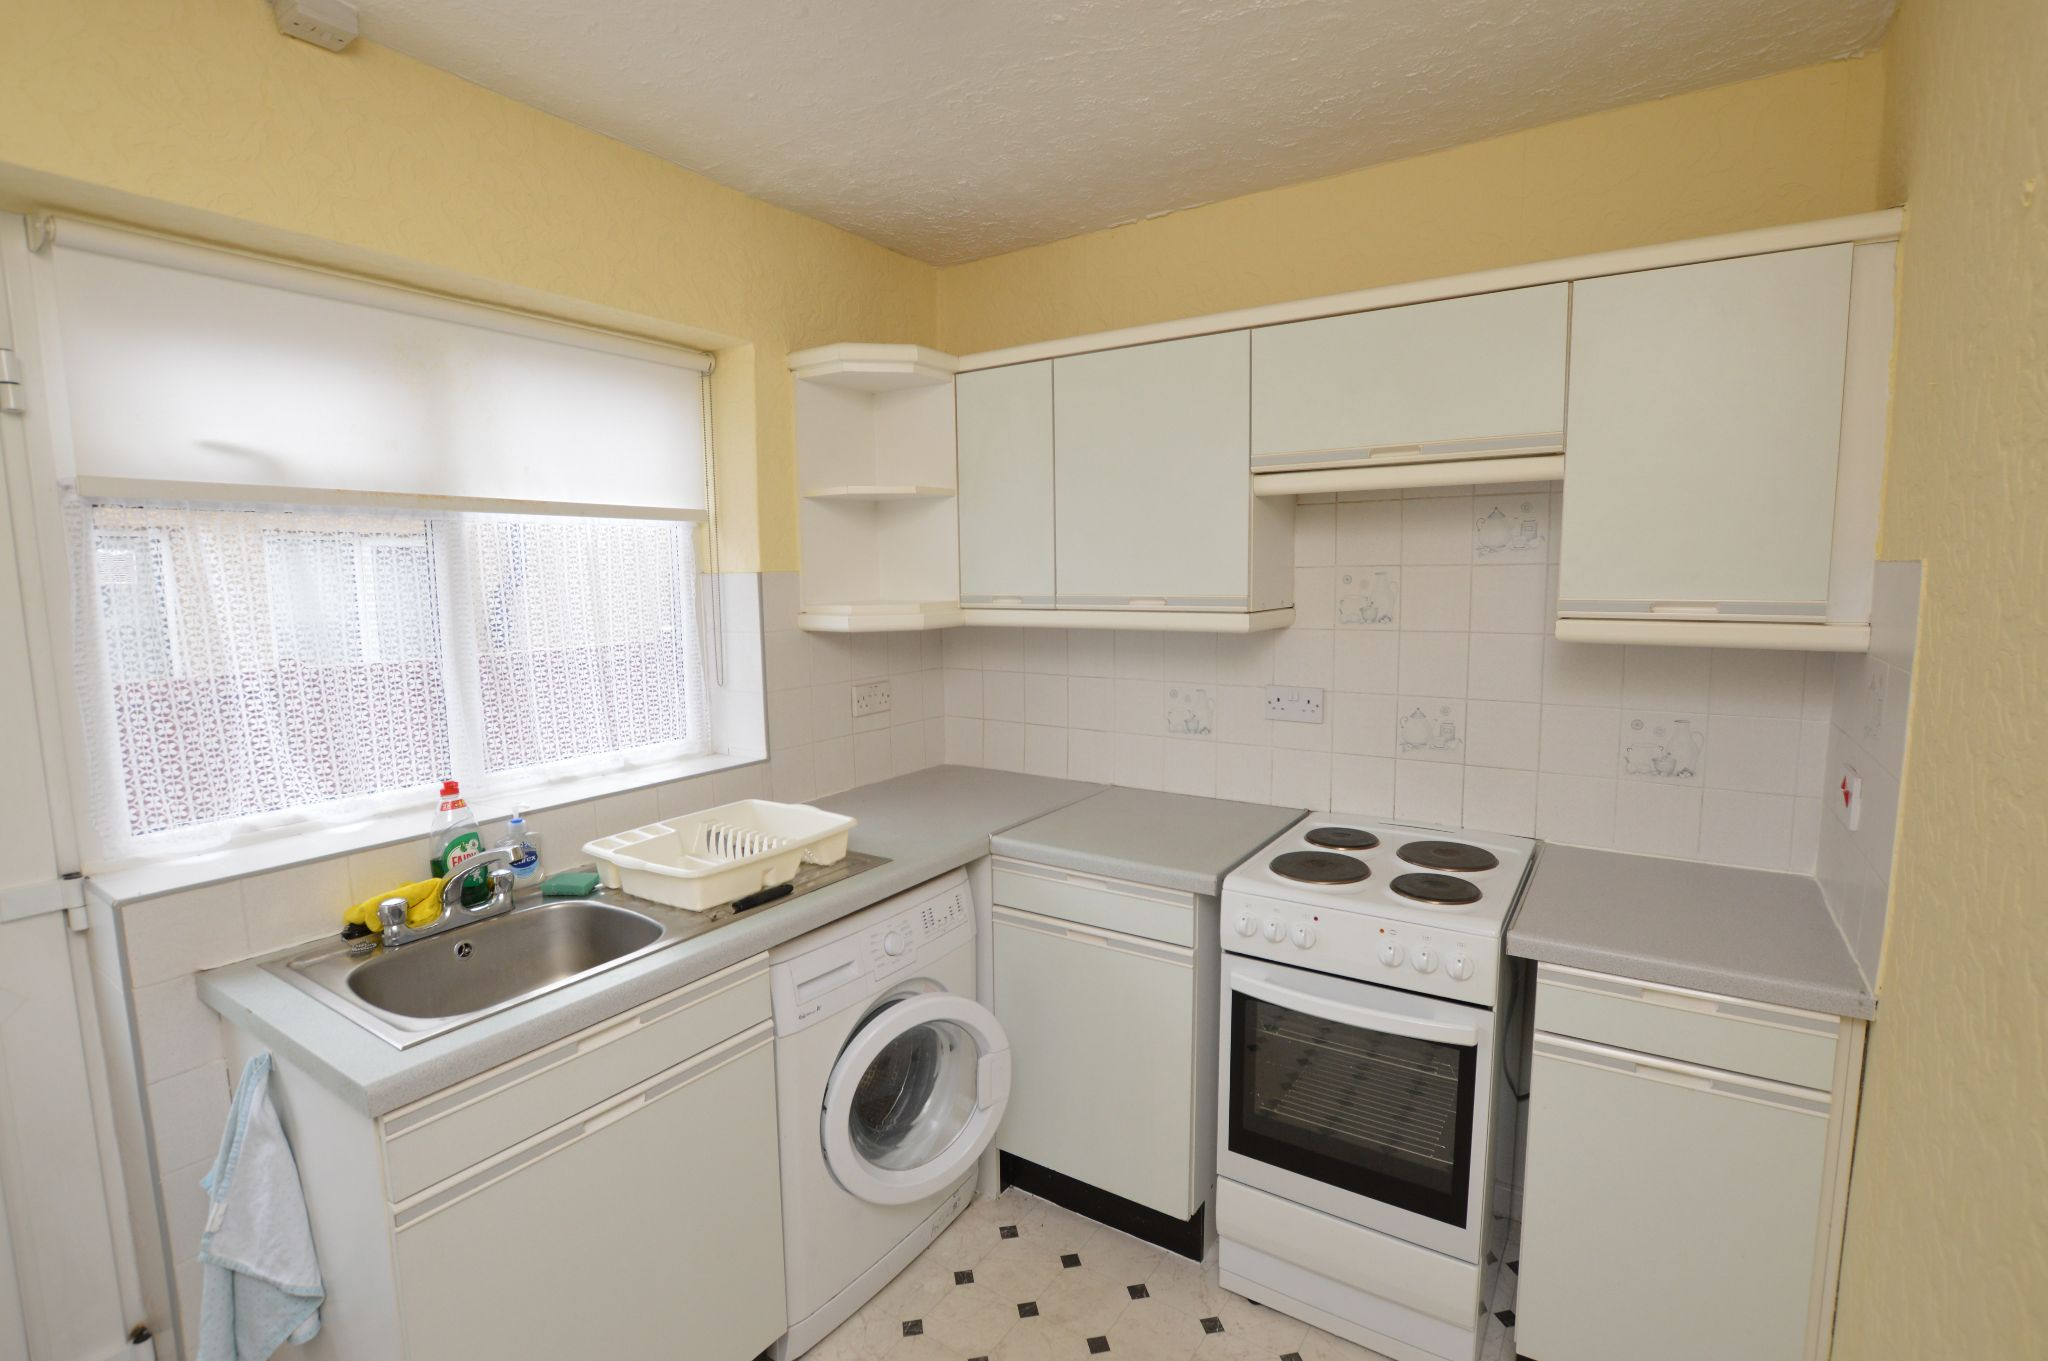 2 bedroom semi-detached bungalow For Sale in Abergele - Kitchen View 2